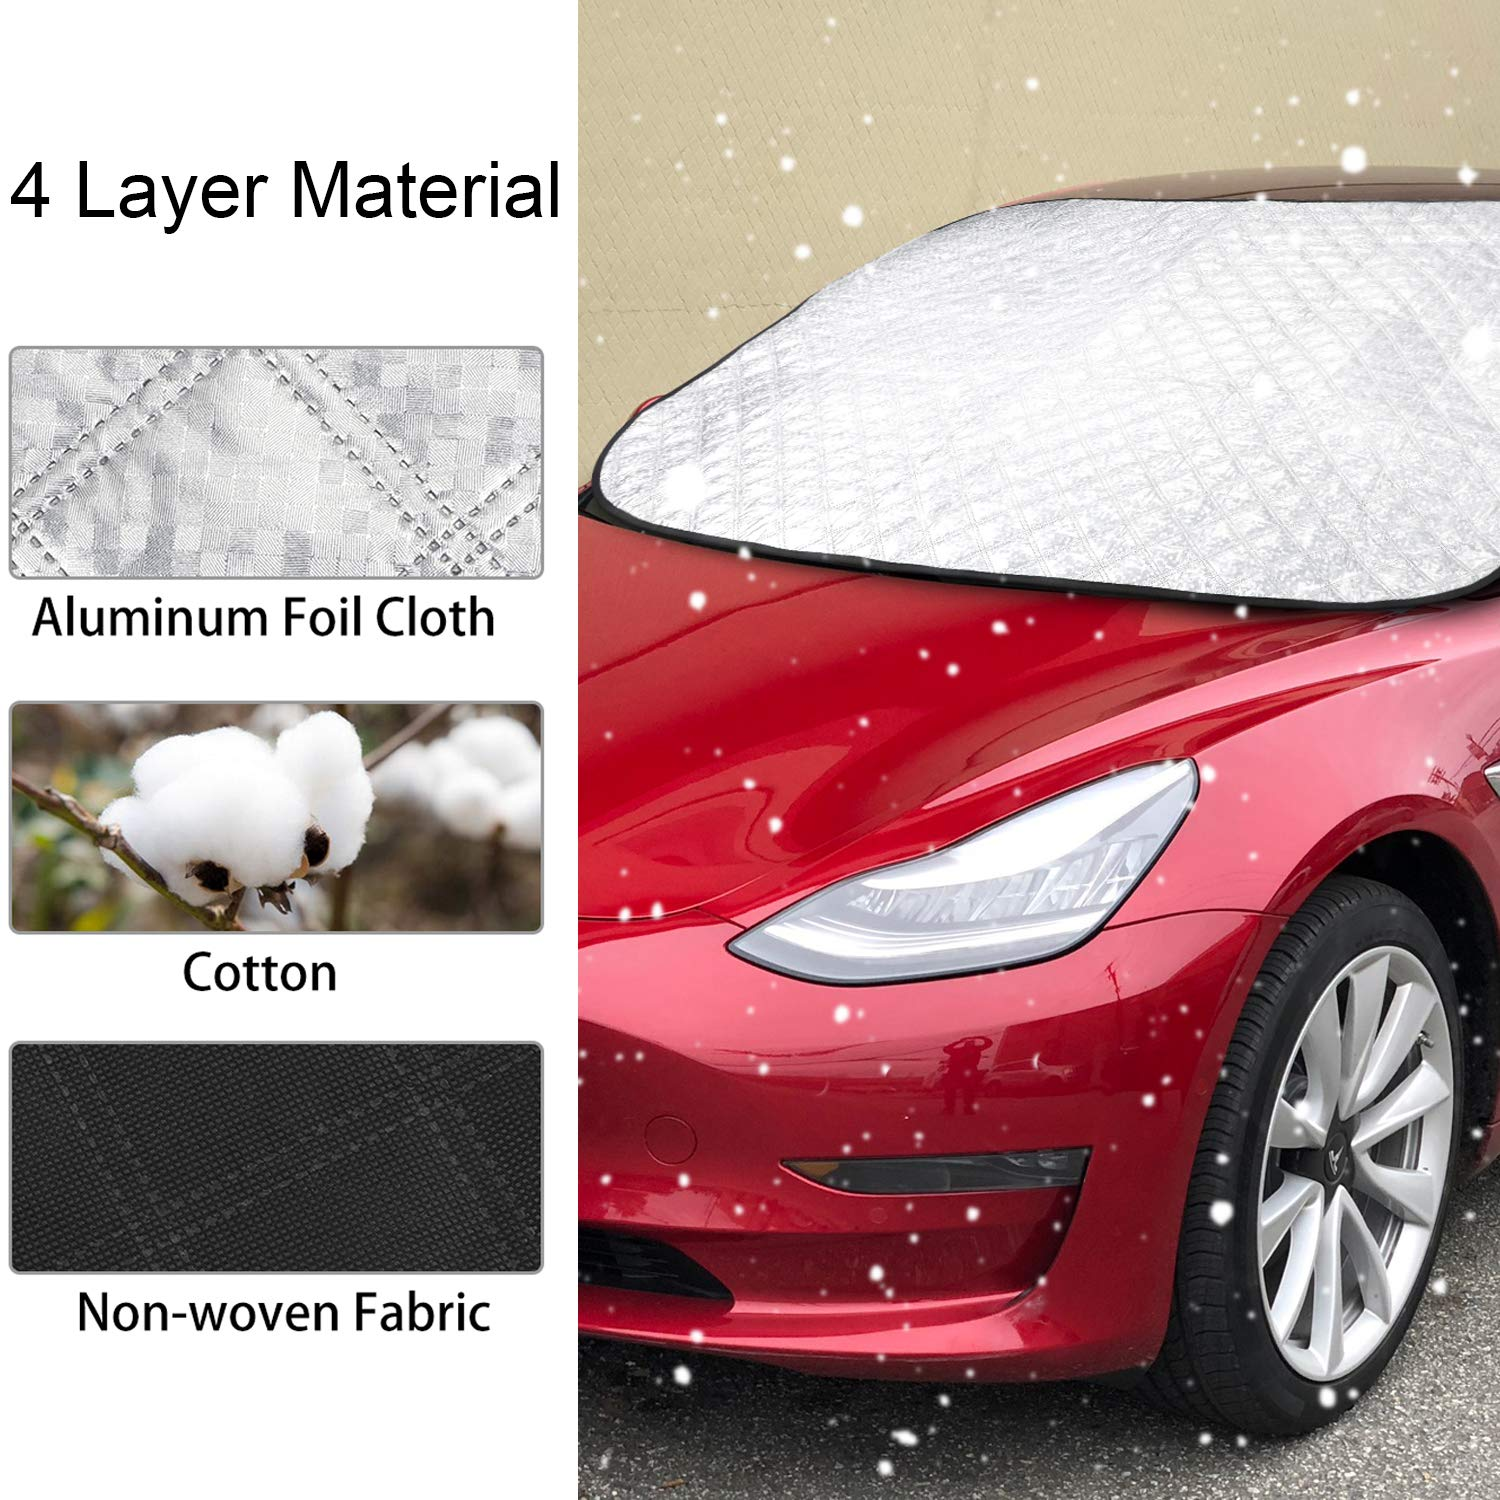 BASENOR Model 3 Winter Windshield Cover Snow /& Ice Cover Front Sun Shade Protector for Tesla Model 3